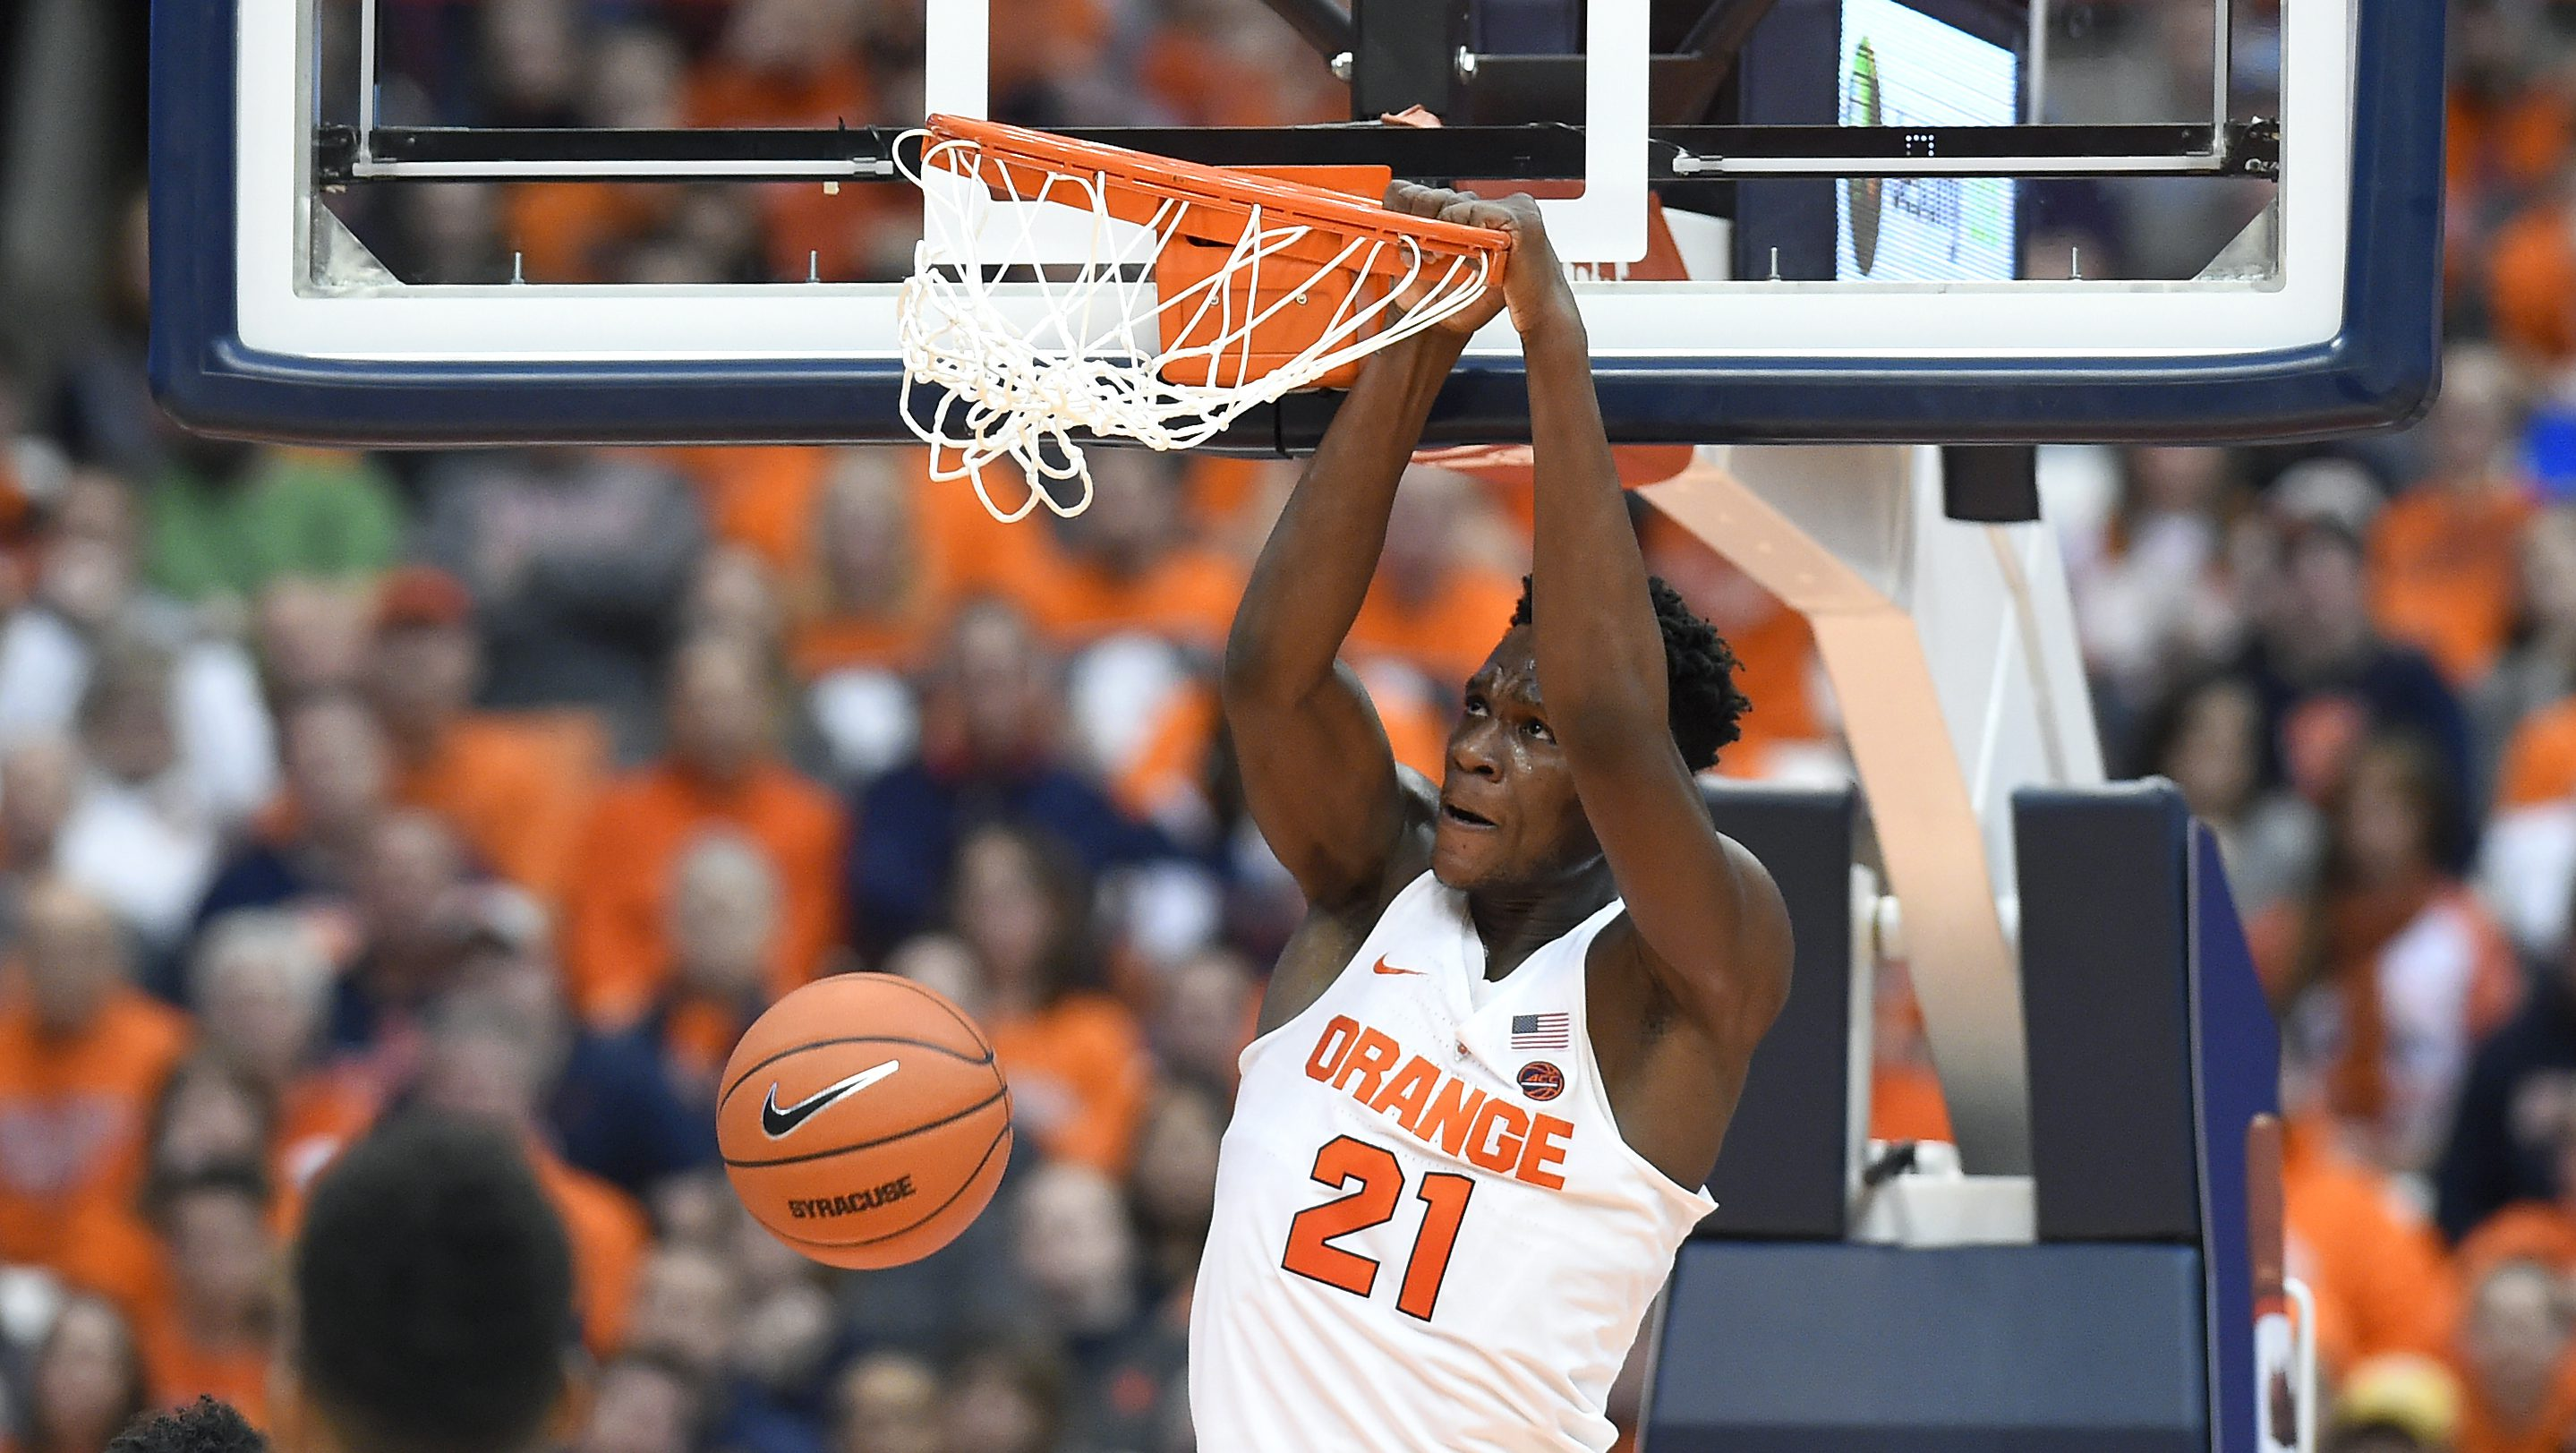 SYRACUSE, NY - JANUARY 28: Tyler Roberson #21 of the Syracuse Orange dunks the ball against the Florida State Seminoles during the first half at the Carrier Dome on January 28, 2017 in Syracuse, New York. (Photo by Rich Barnes/Getty Images)